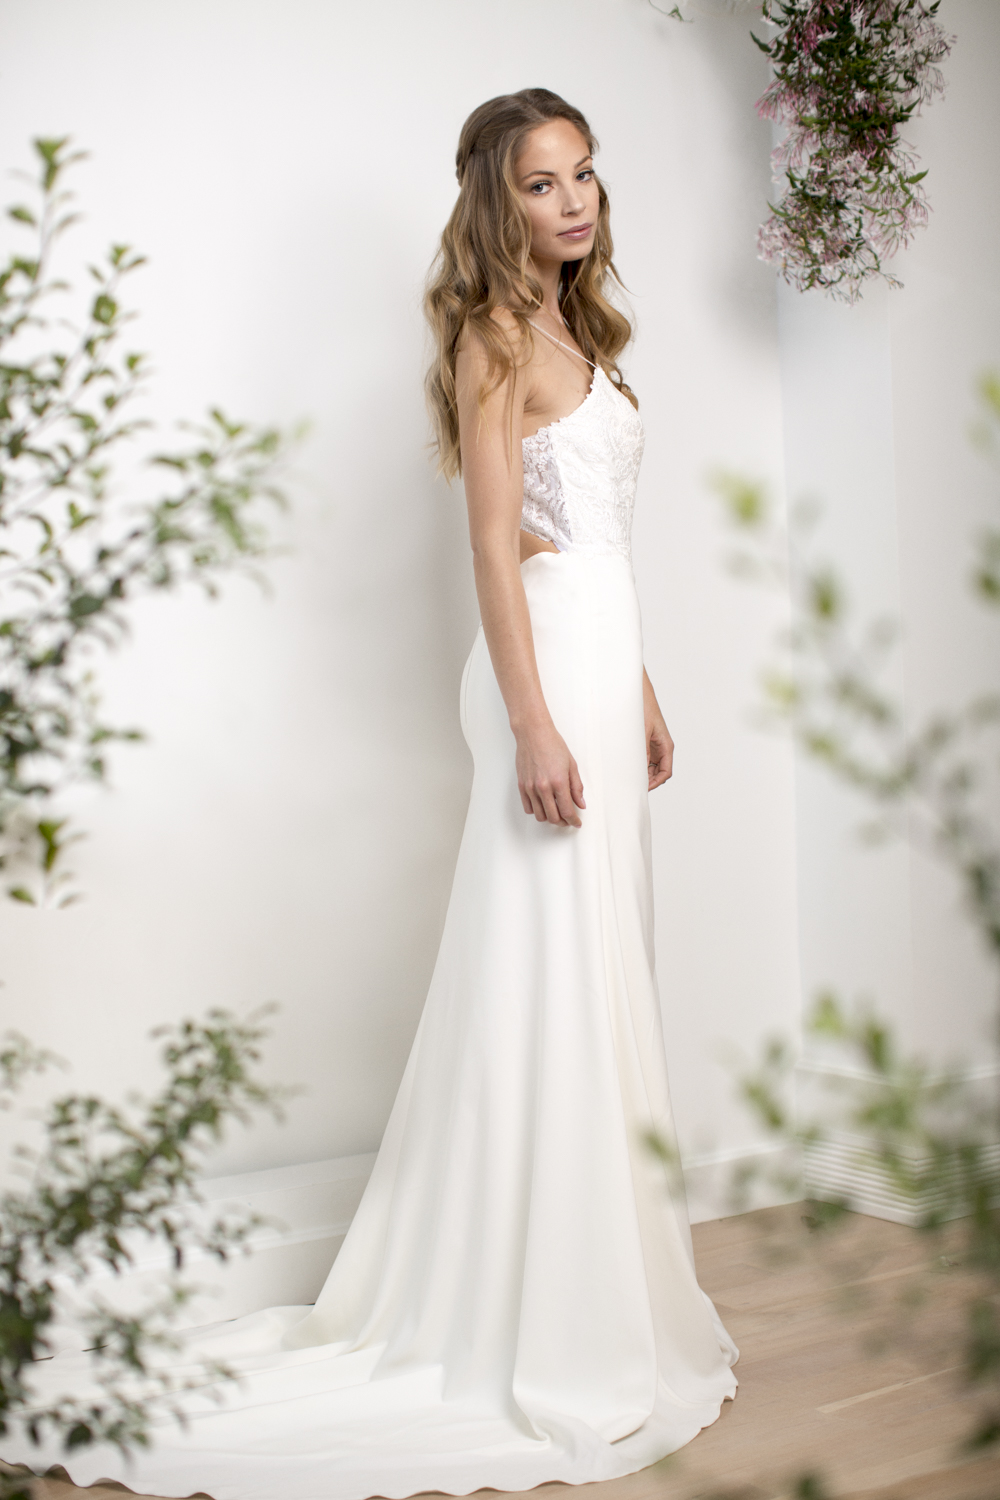 carrietyler_fashionbridal_sidneykraemer_low-34.jpg